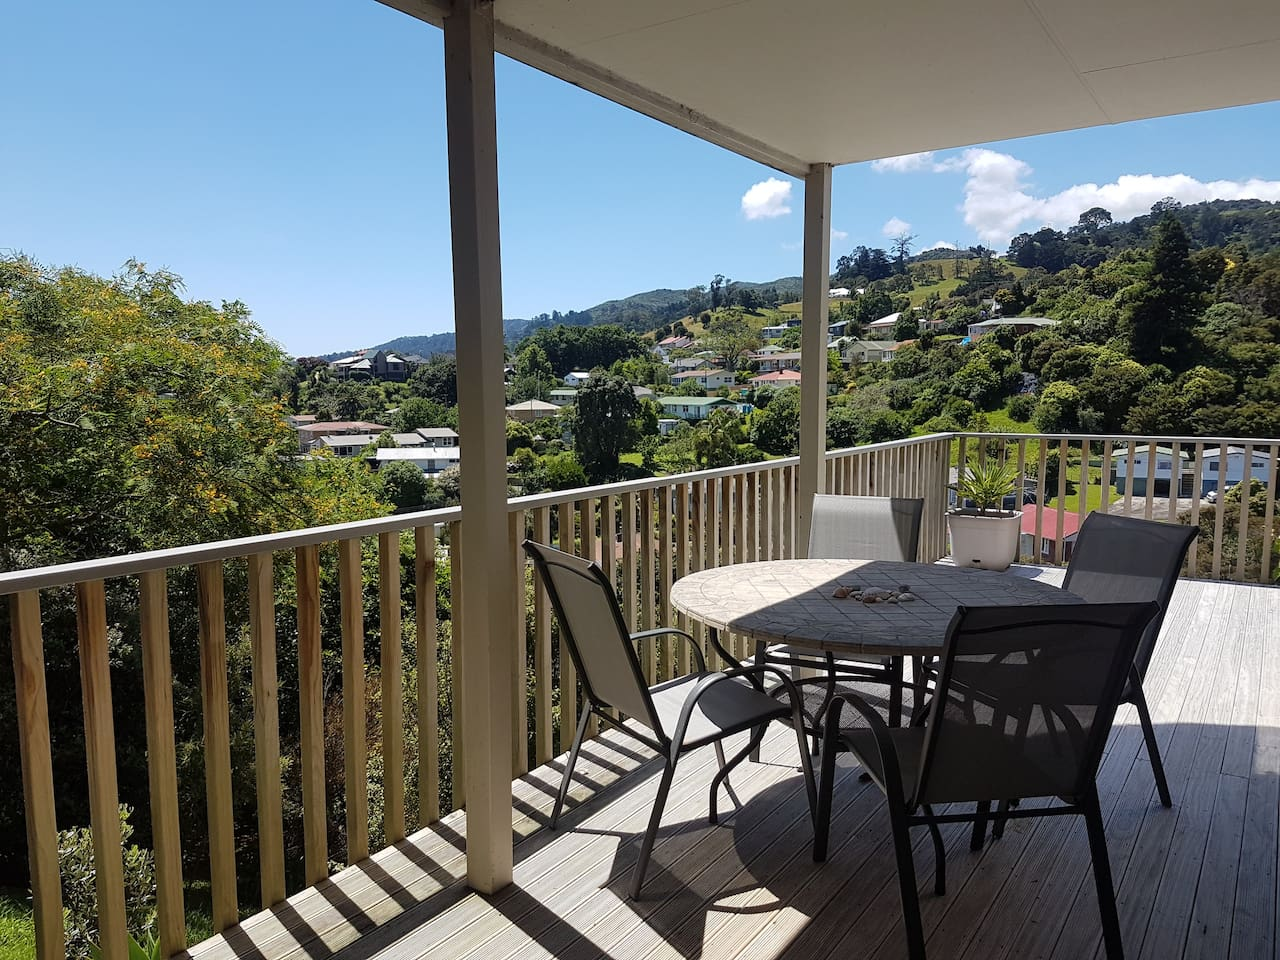 Your private deck with relaxing views over hills, town and sea.